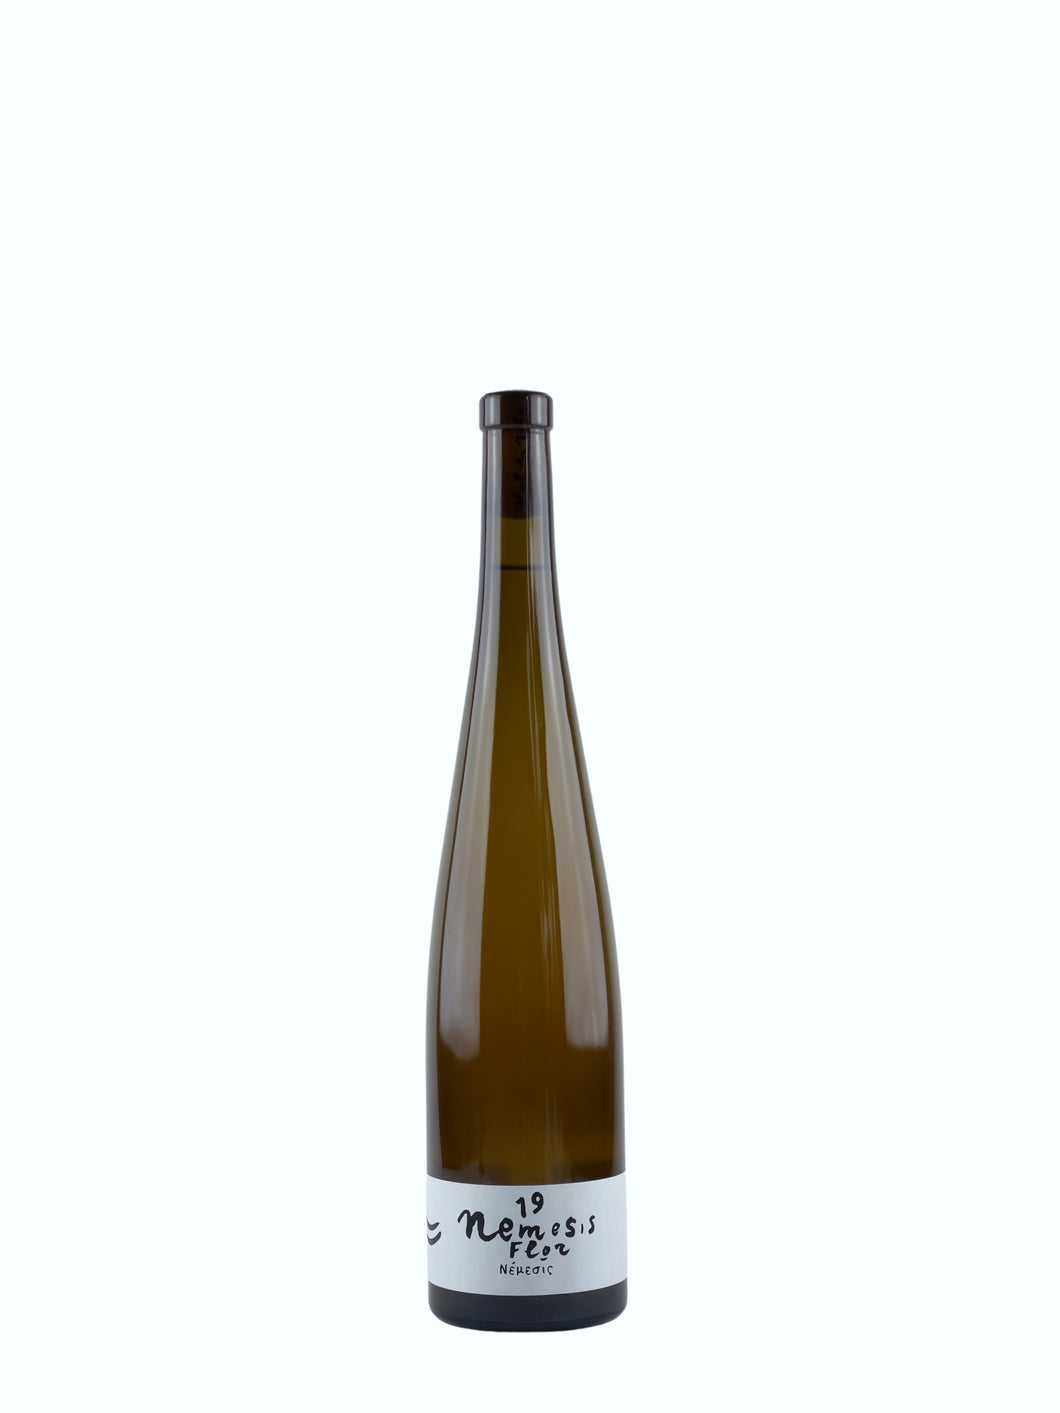 Bottle of Nemesis Flor, a Natural Wine produced by Valdisole with Favorita and Gewürztraminer grapes, exclusively for FYT Wine.